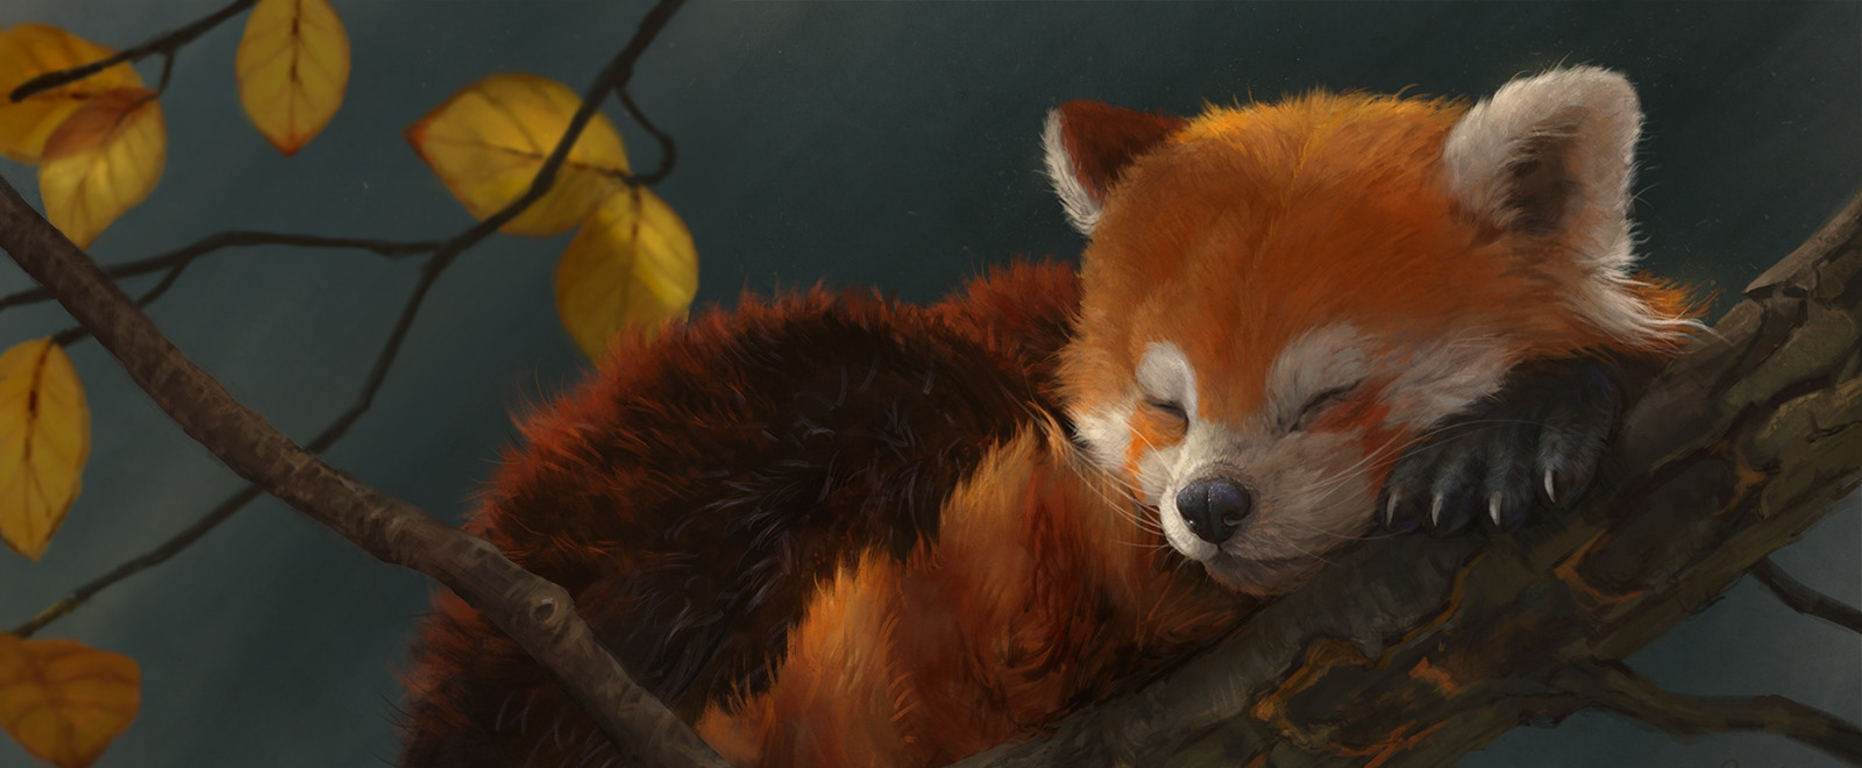 red panda background.jpg